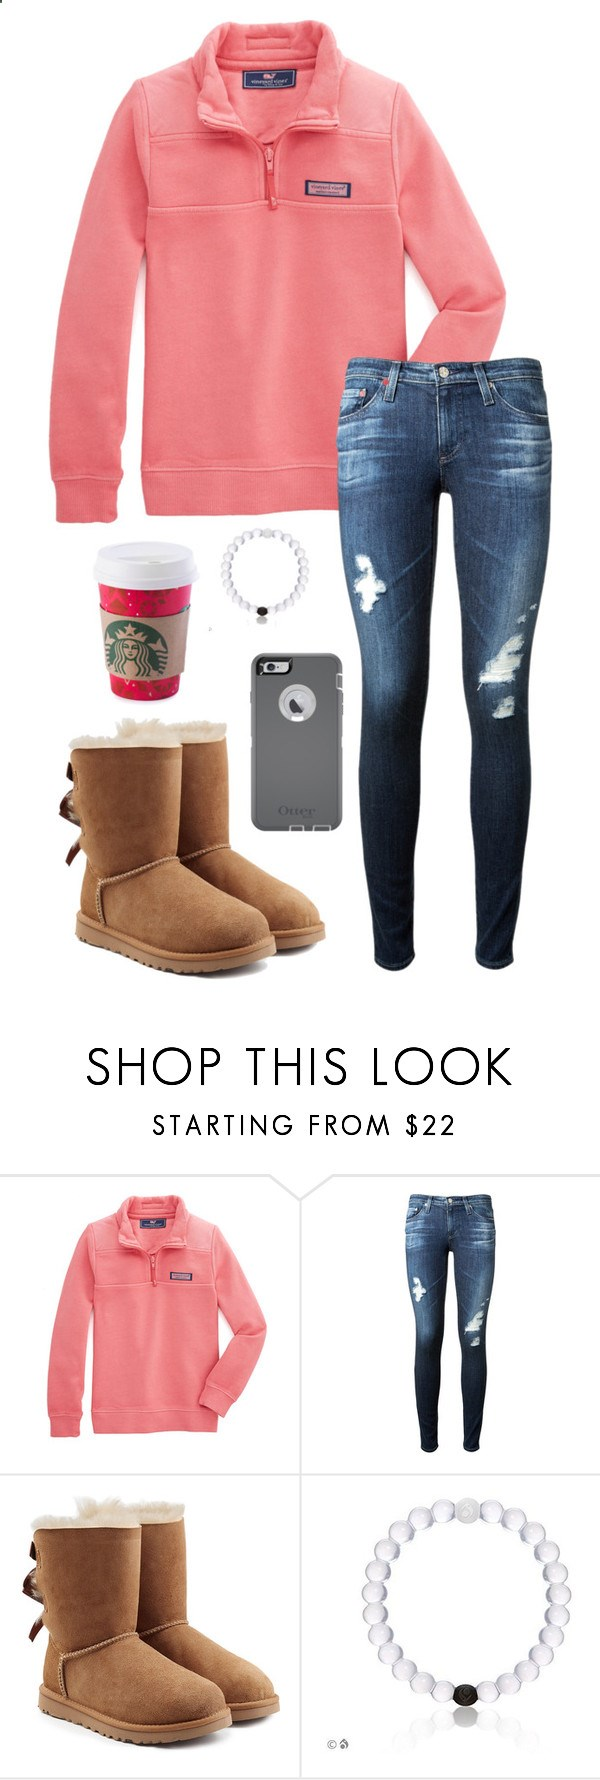 UGG BOOTS $39 on | Outfits, Cute outfits, School outfits